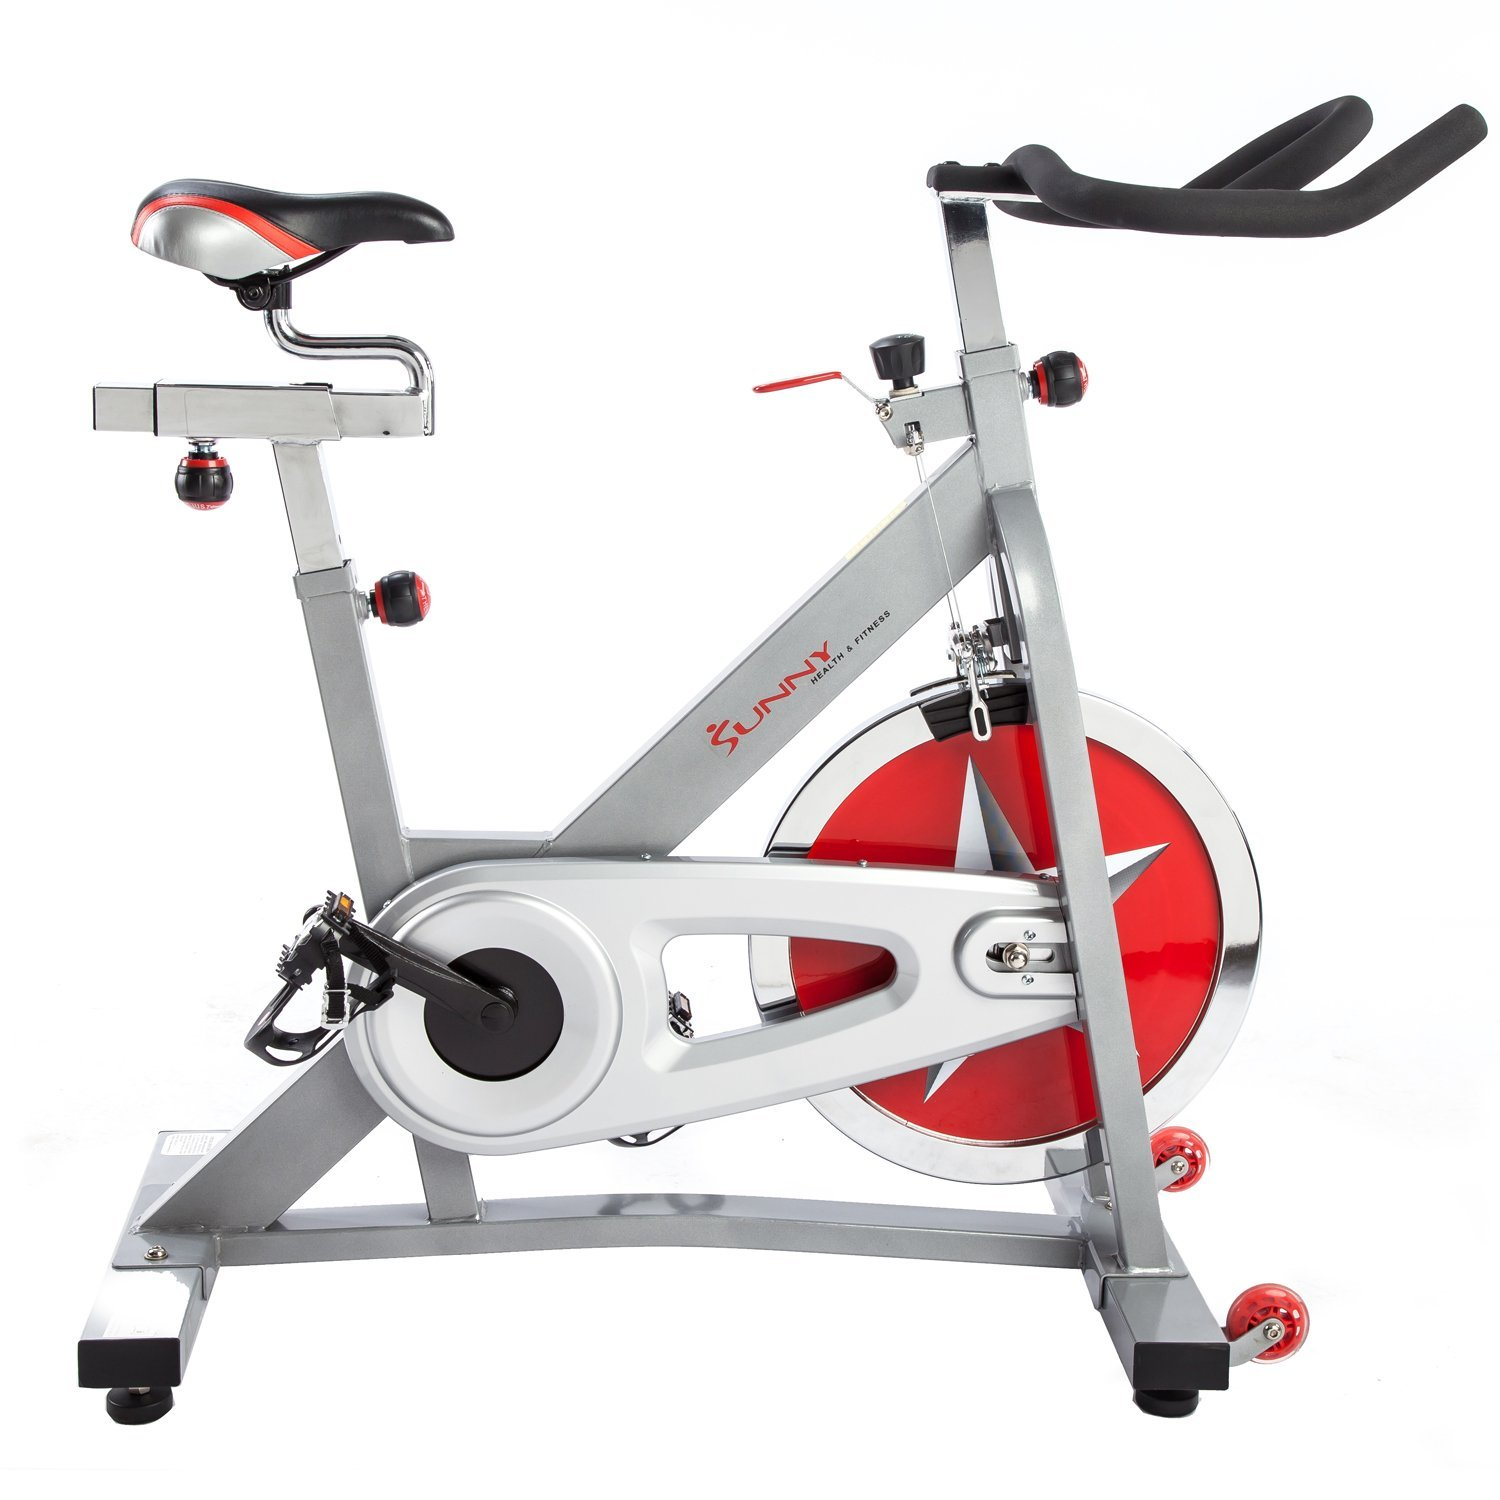 Spin Cycle Insurance, group fitness insurance, spin cycle instructor insurance